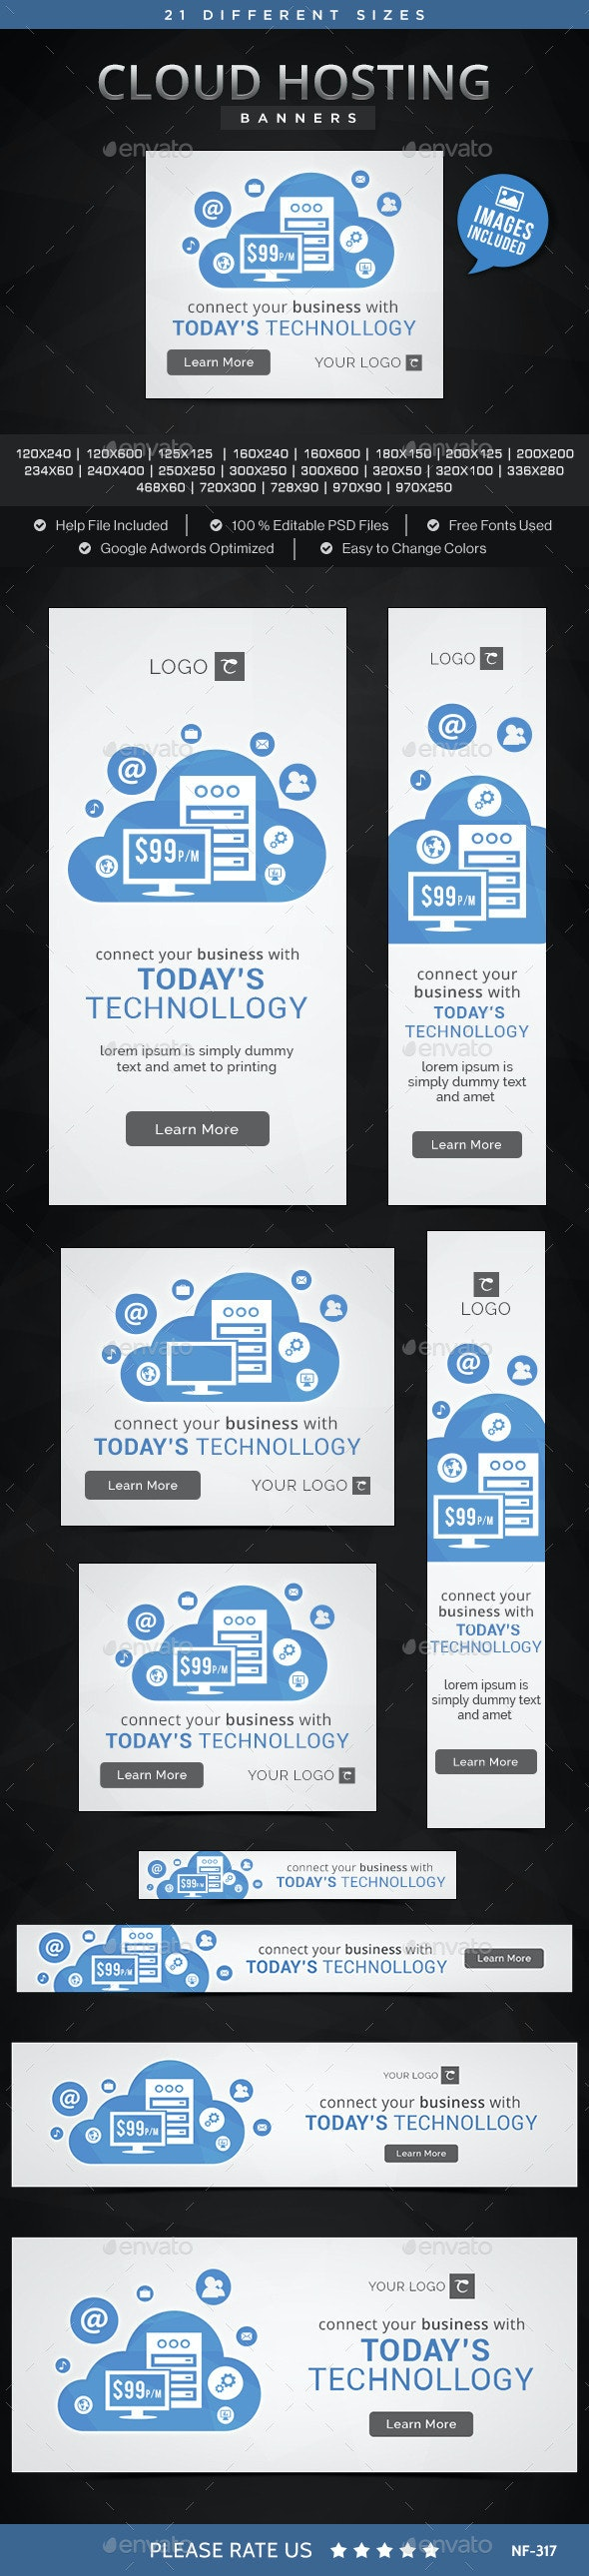 Cloud Hosting Banners - Banners & Ads Web Elements